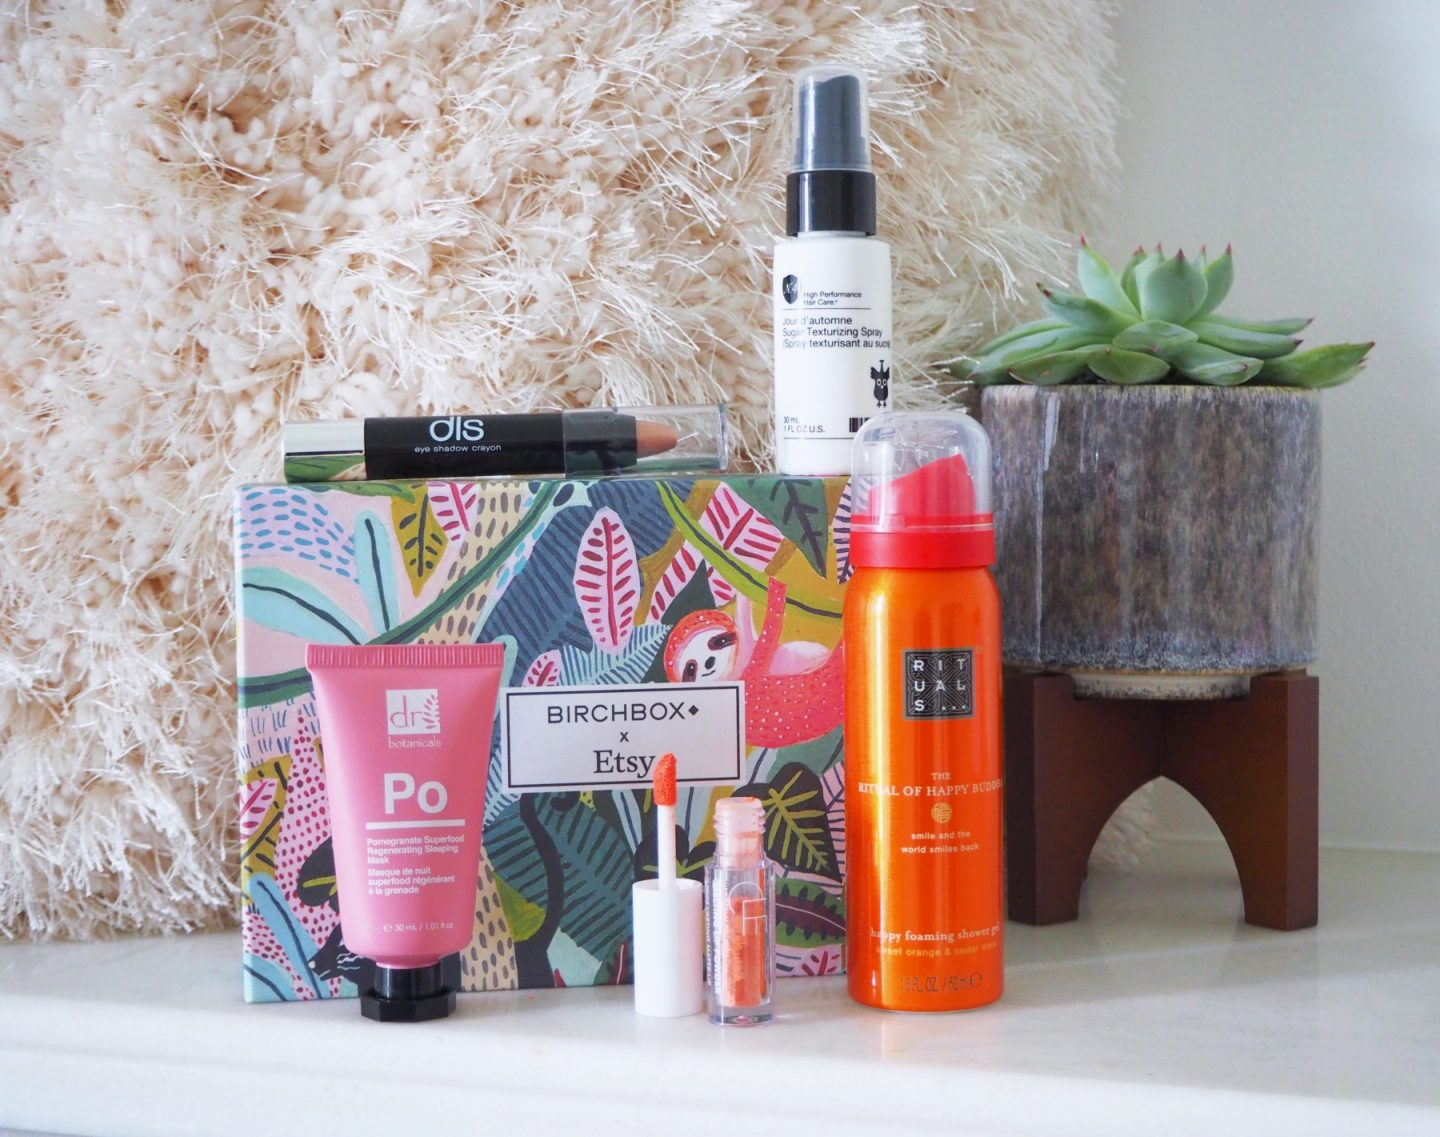 Back to the Birchbox - full product shots; sugar texturising spray, eye shadow crayon, dr botanicals over night mask, melting lip power & rituals shower gel